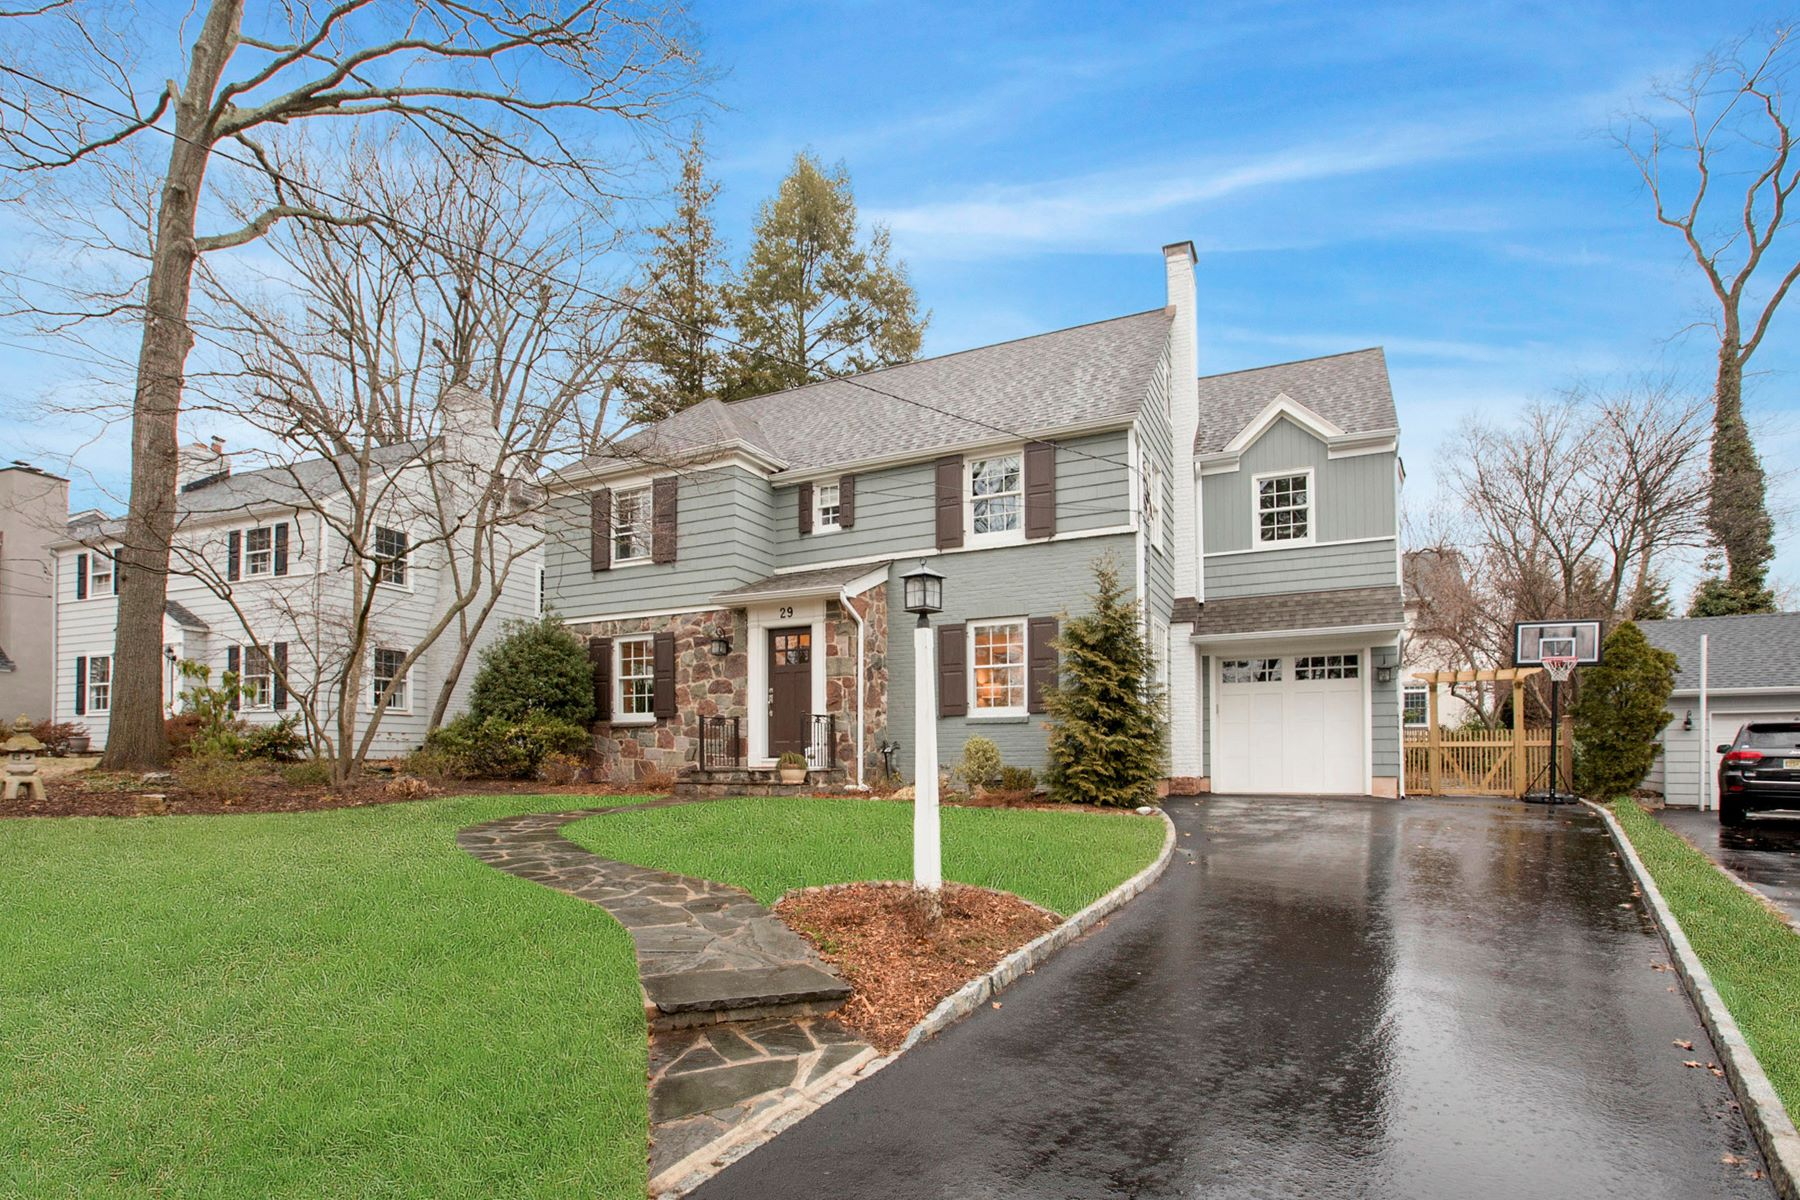 Single Family Home for Sale at Beautiful 1930s center hall colonial on a quiet cul-de-sac 29 Gallowae, Westfield, New Jersey, 07090 United States